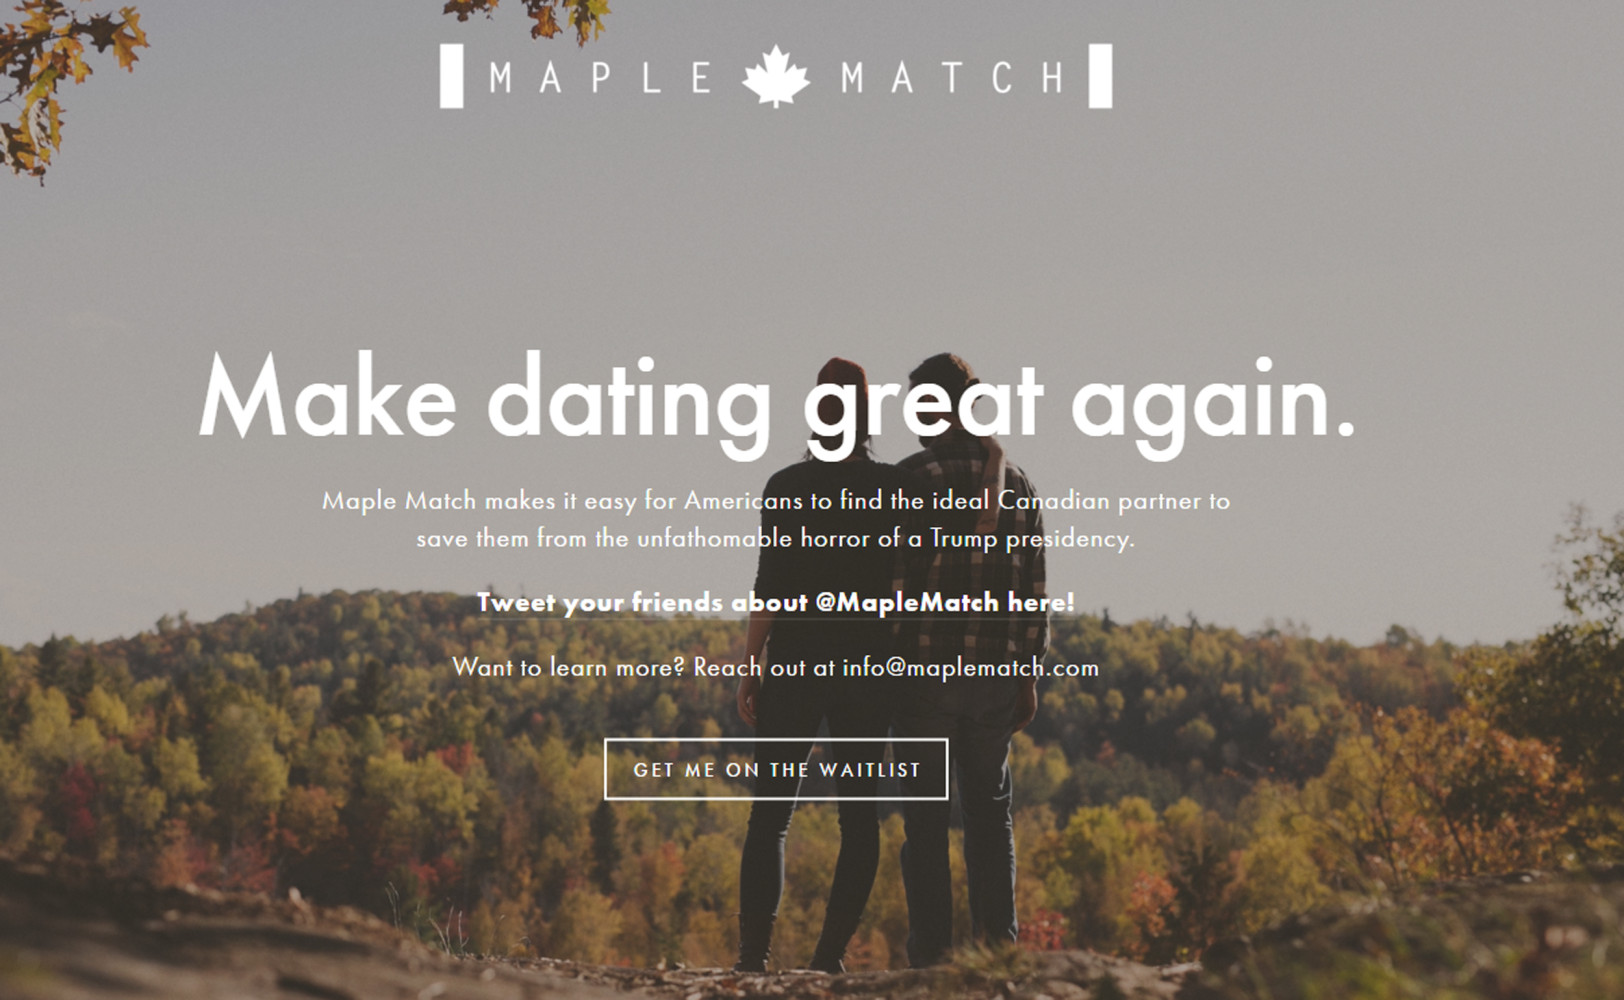 Match dating site canada